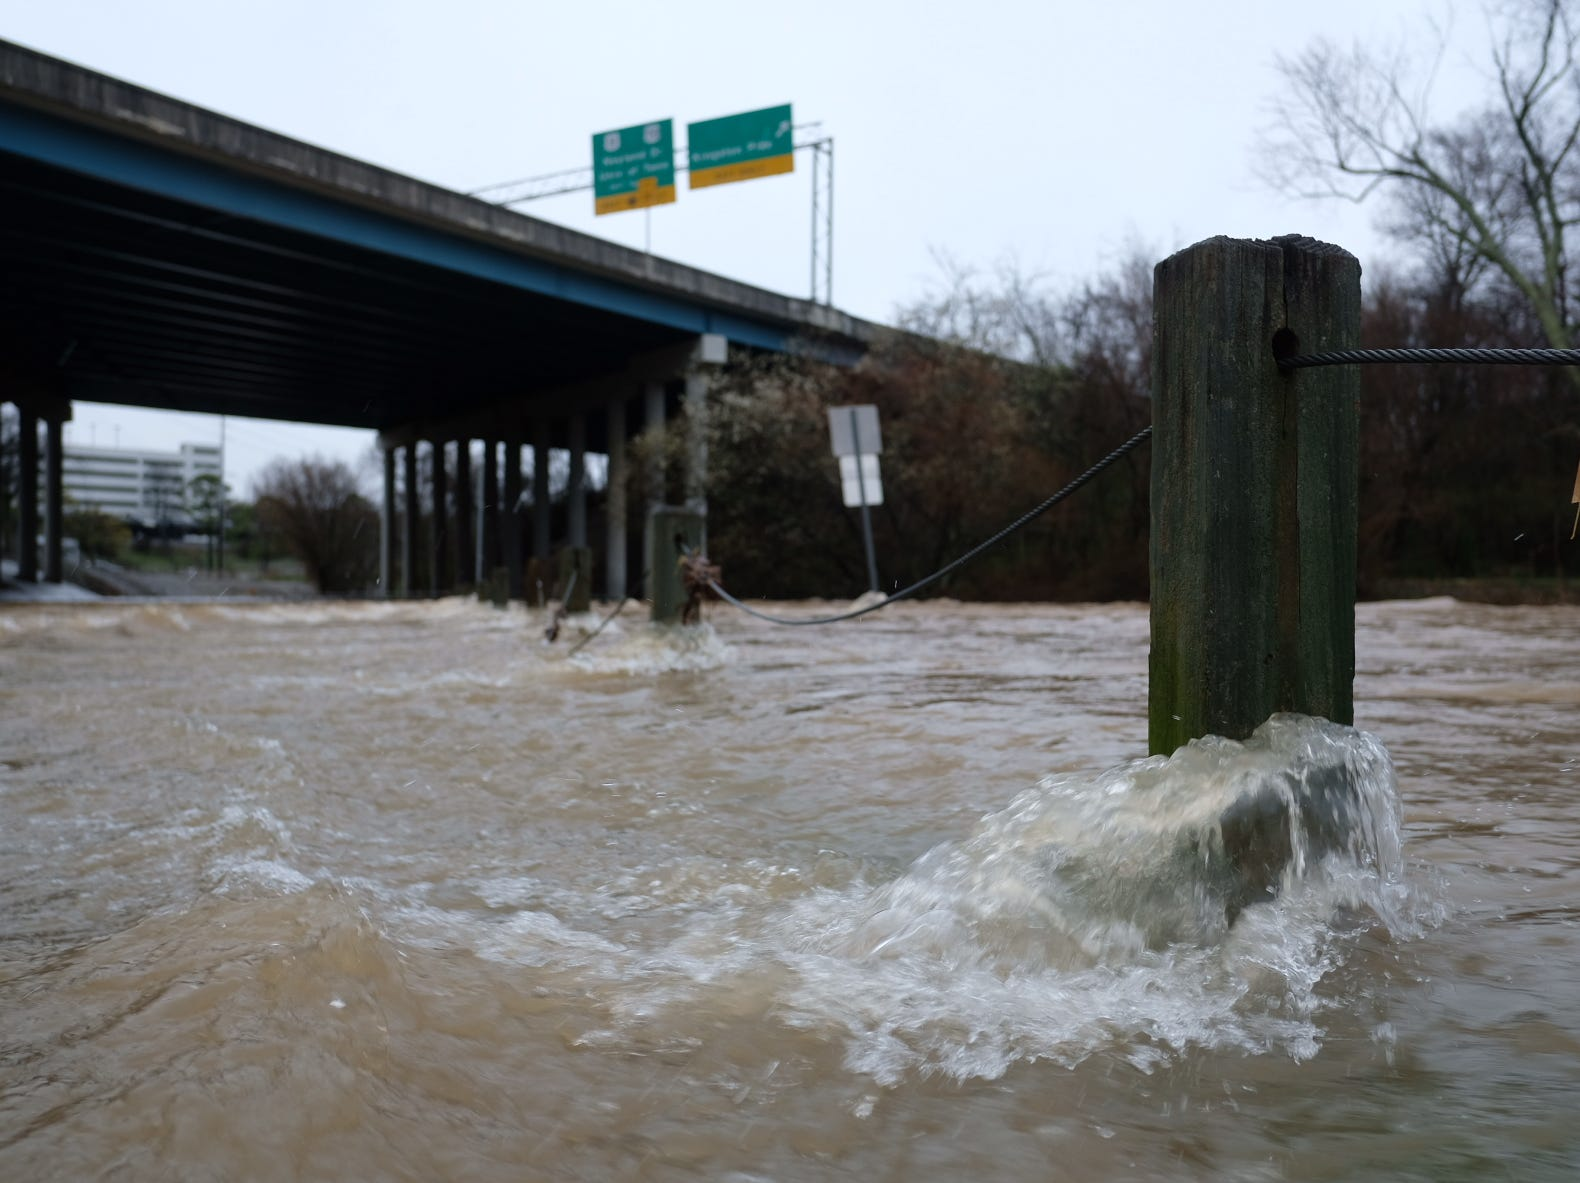 Flood waters submerge Tyson Park in Knoxville on Saturday, Feb. 23, 2019.